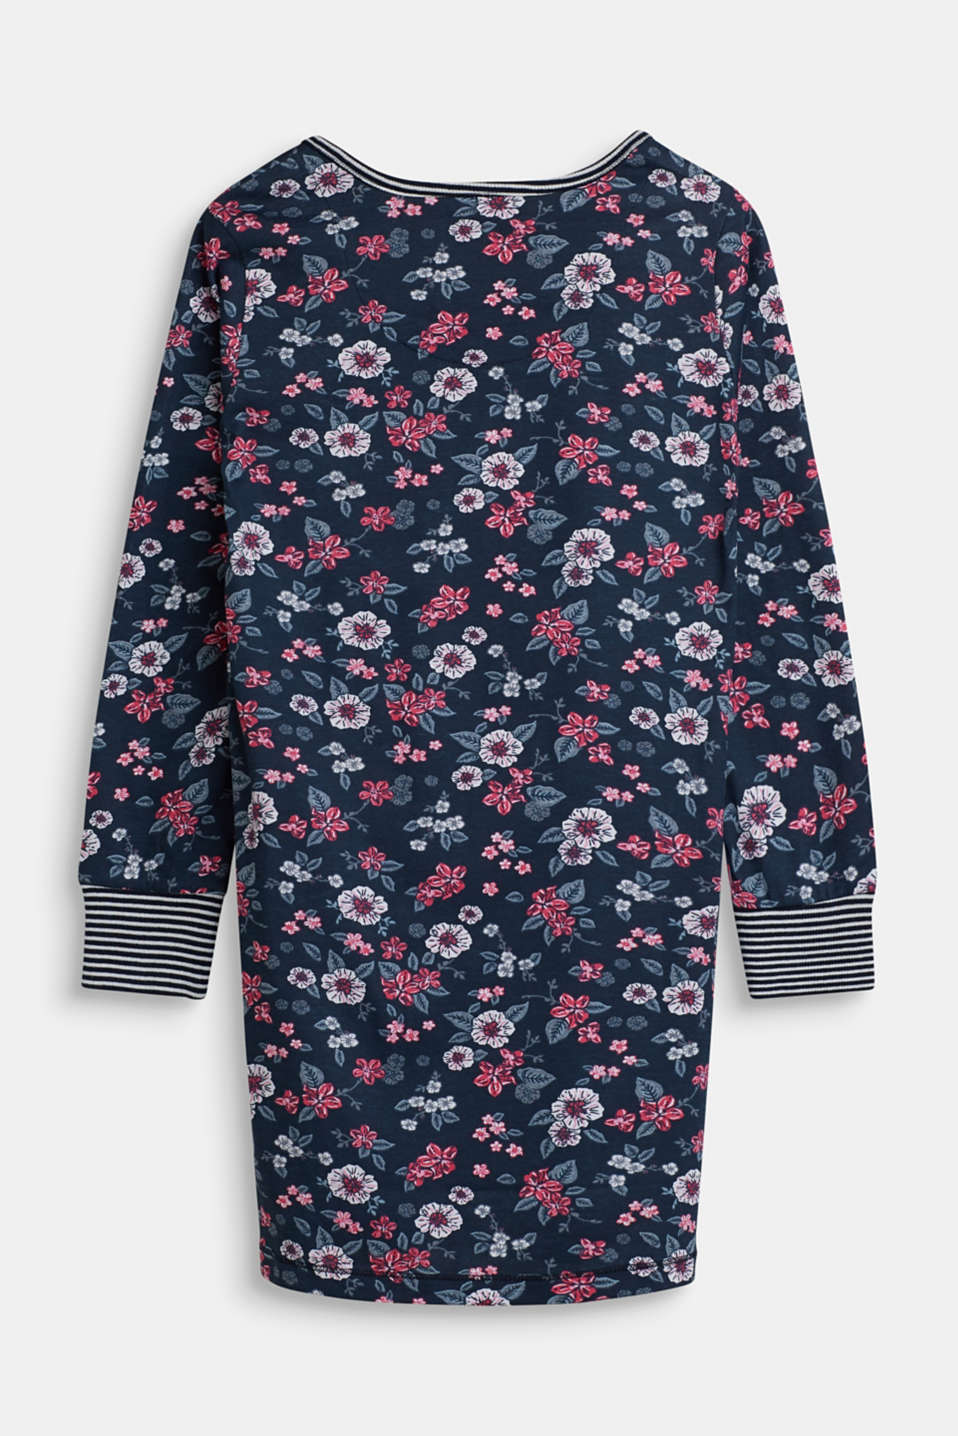 Floral nightshirt in 100% cotton, NAVY, detail image number 1